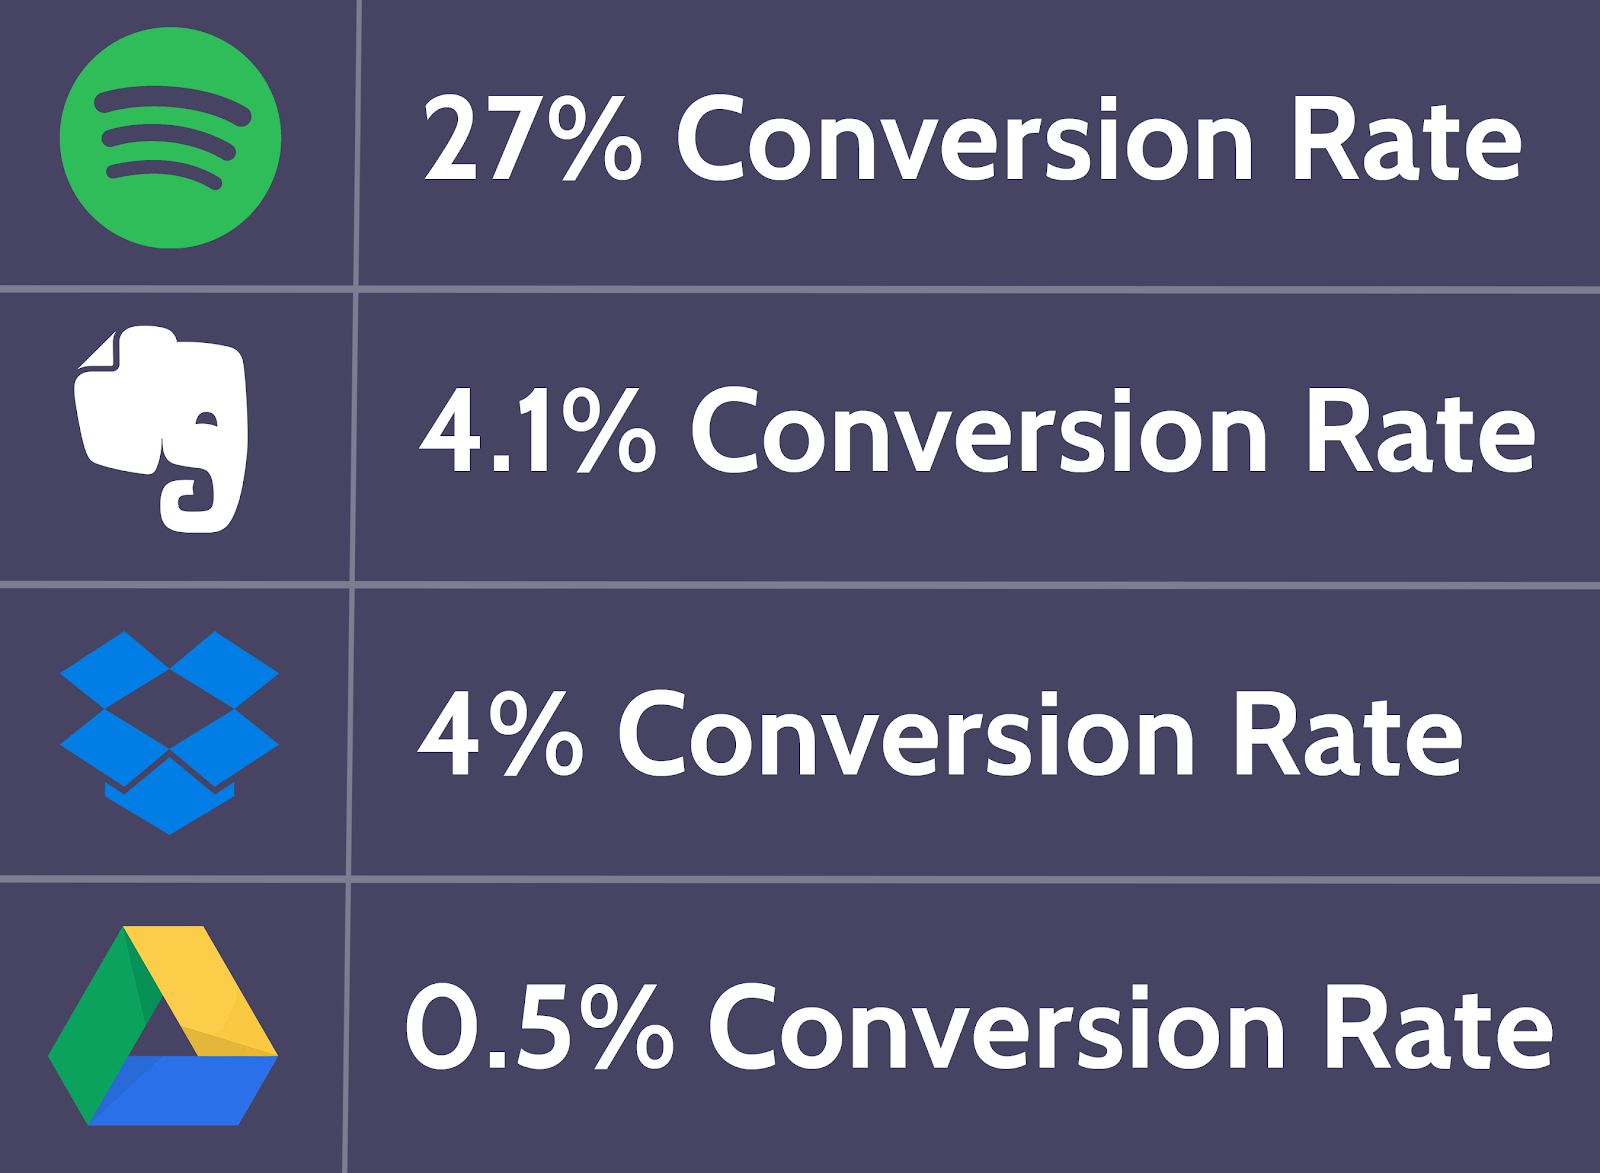 AVG Conversion Rate2.png